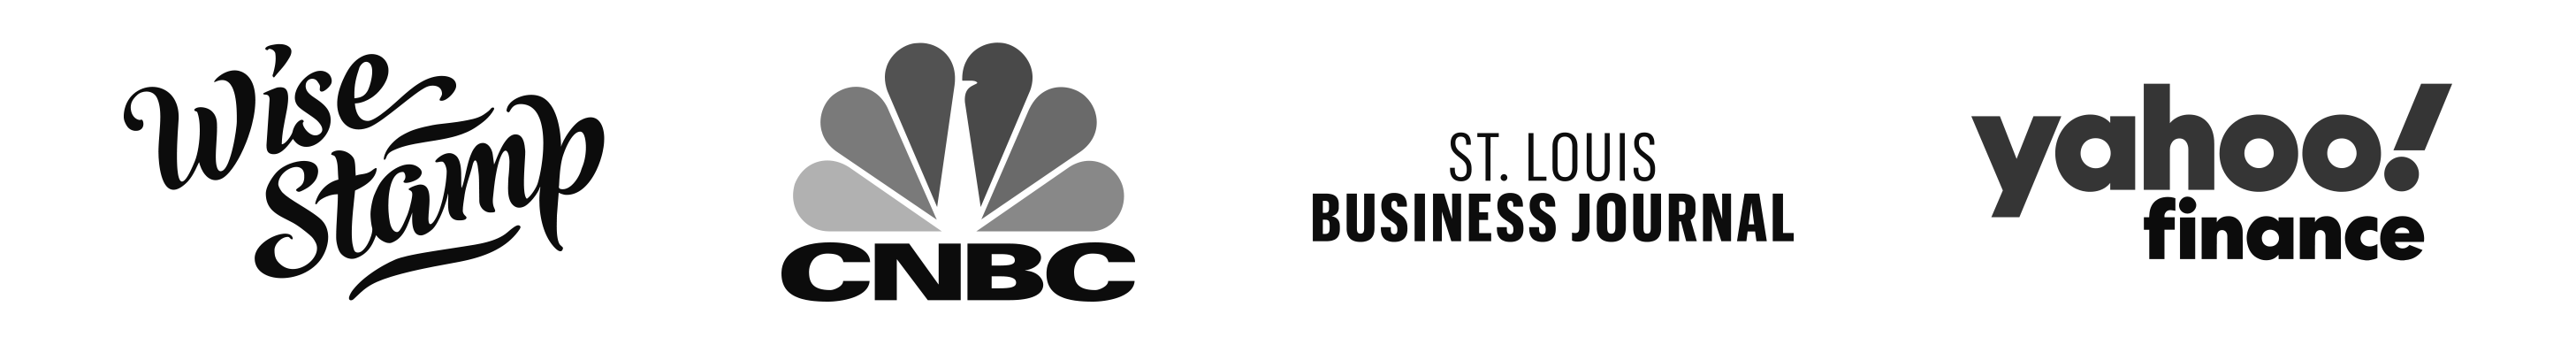 Garett Southerton has been mentioned on WiseStamp, CNBC, St. Louis Business Journal, and Yahoo Finance